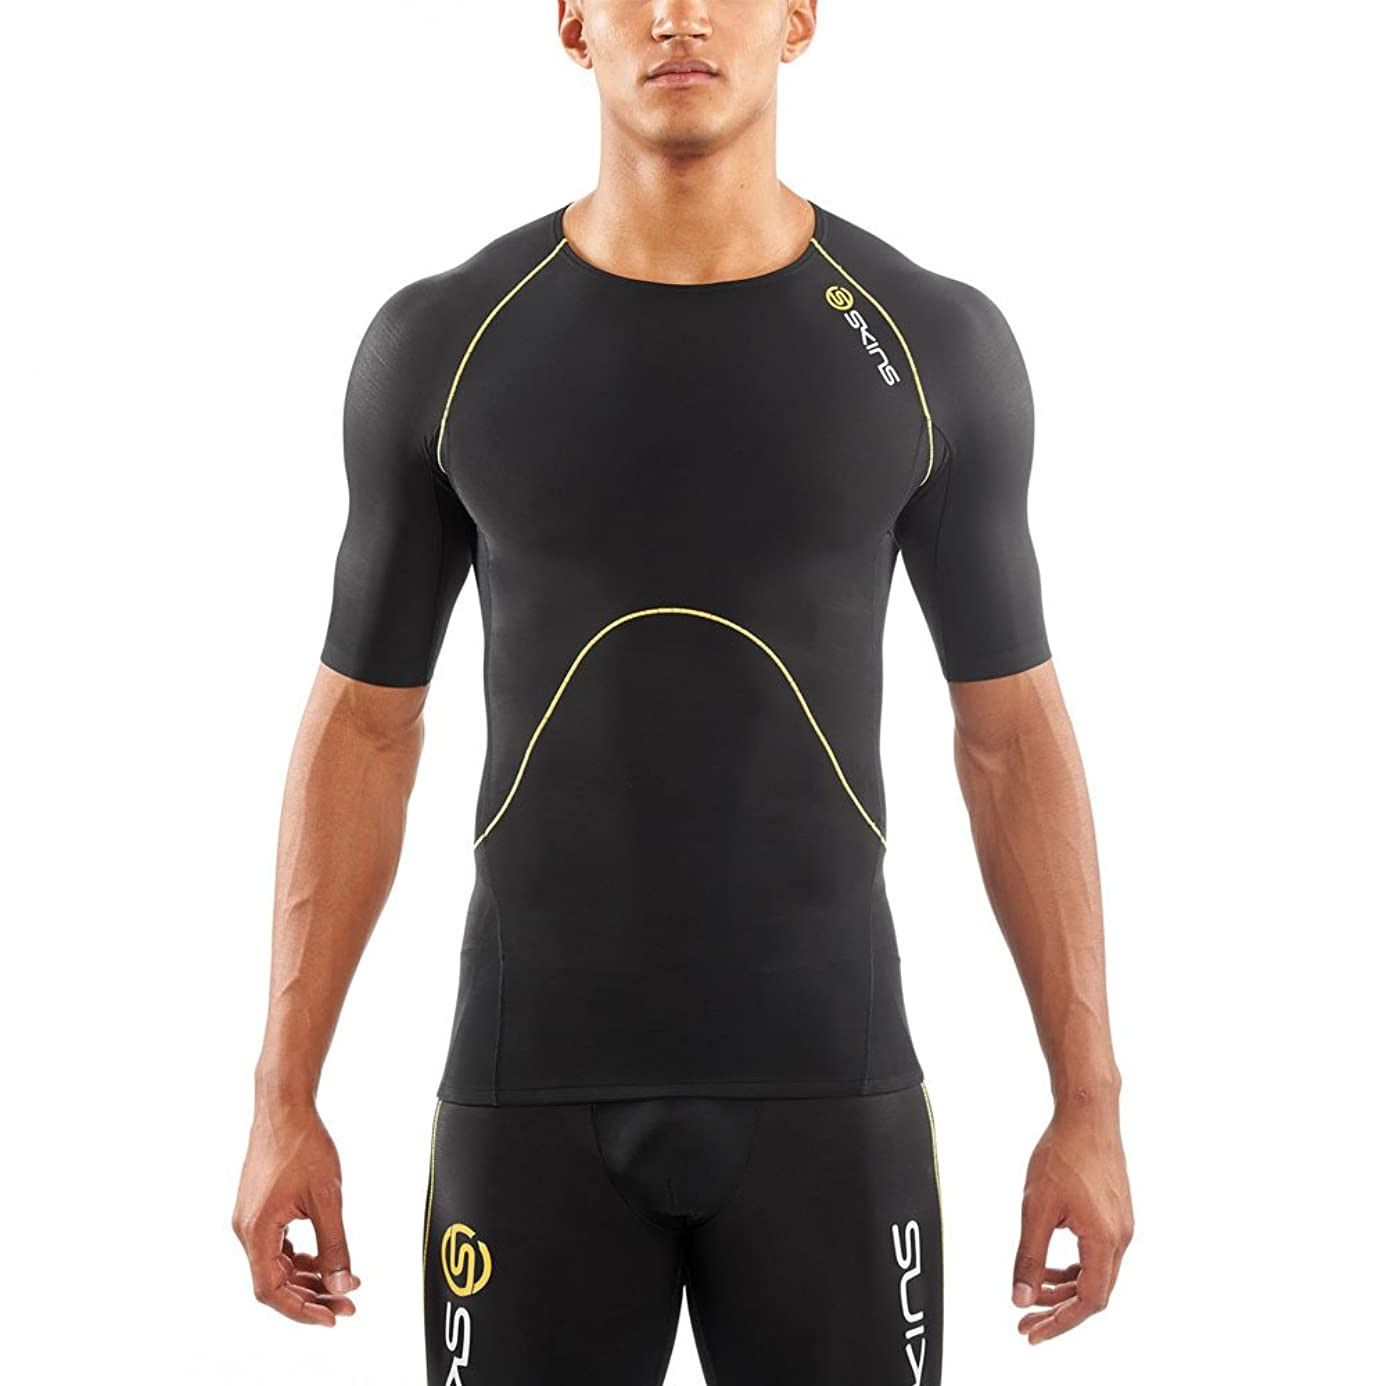 Skins A400 Short Sleeve Compression T-Shirt